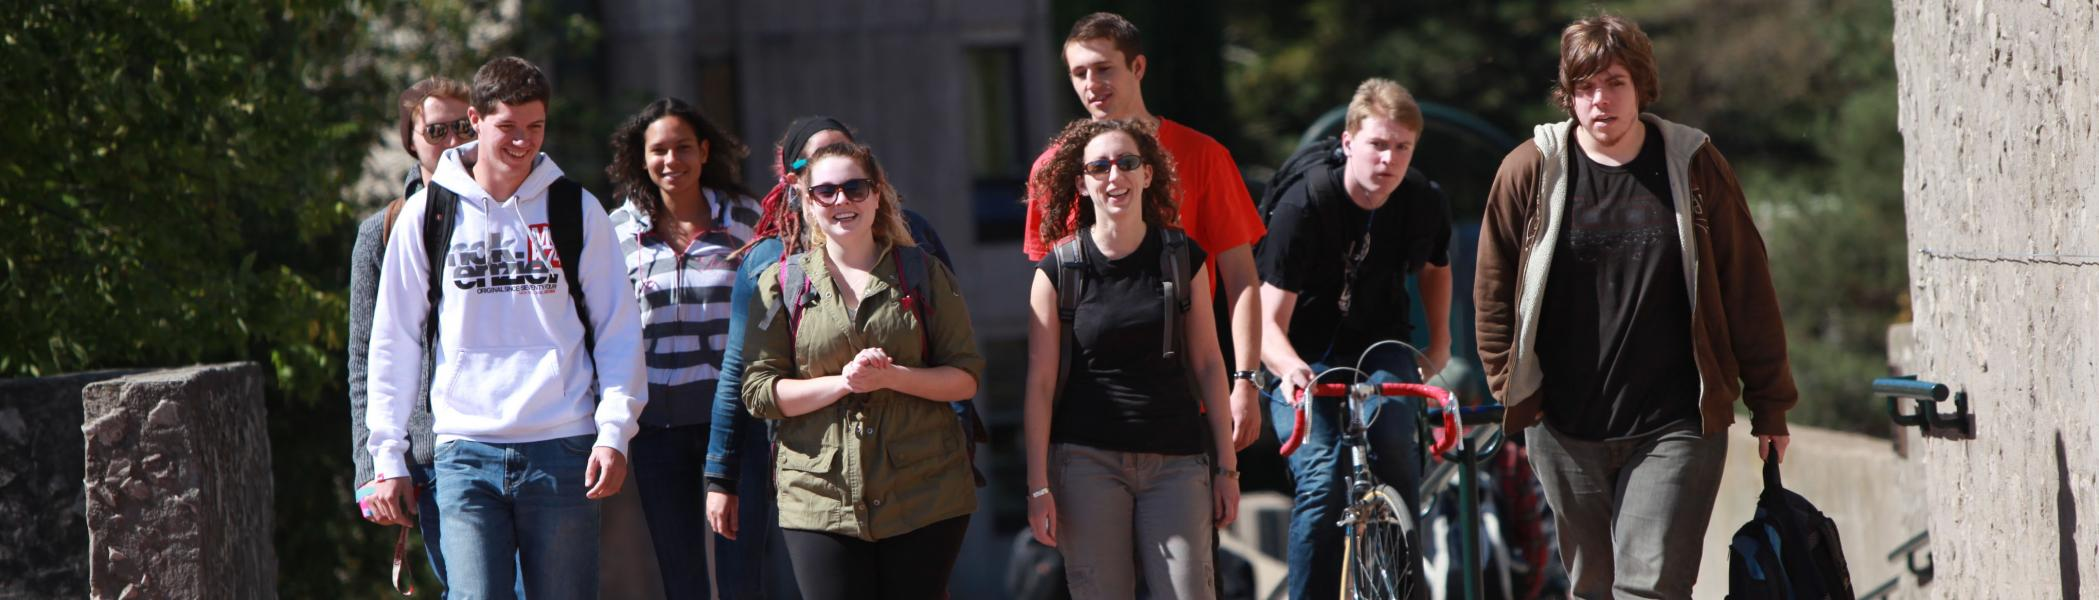 Group of people walking and smiling